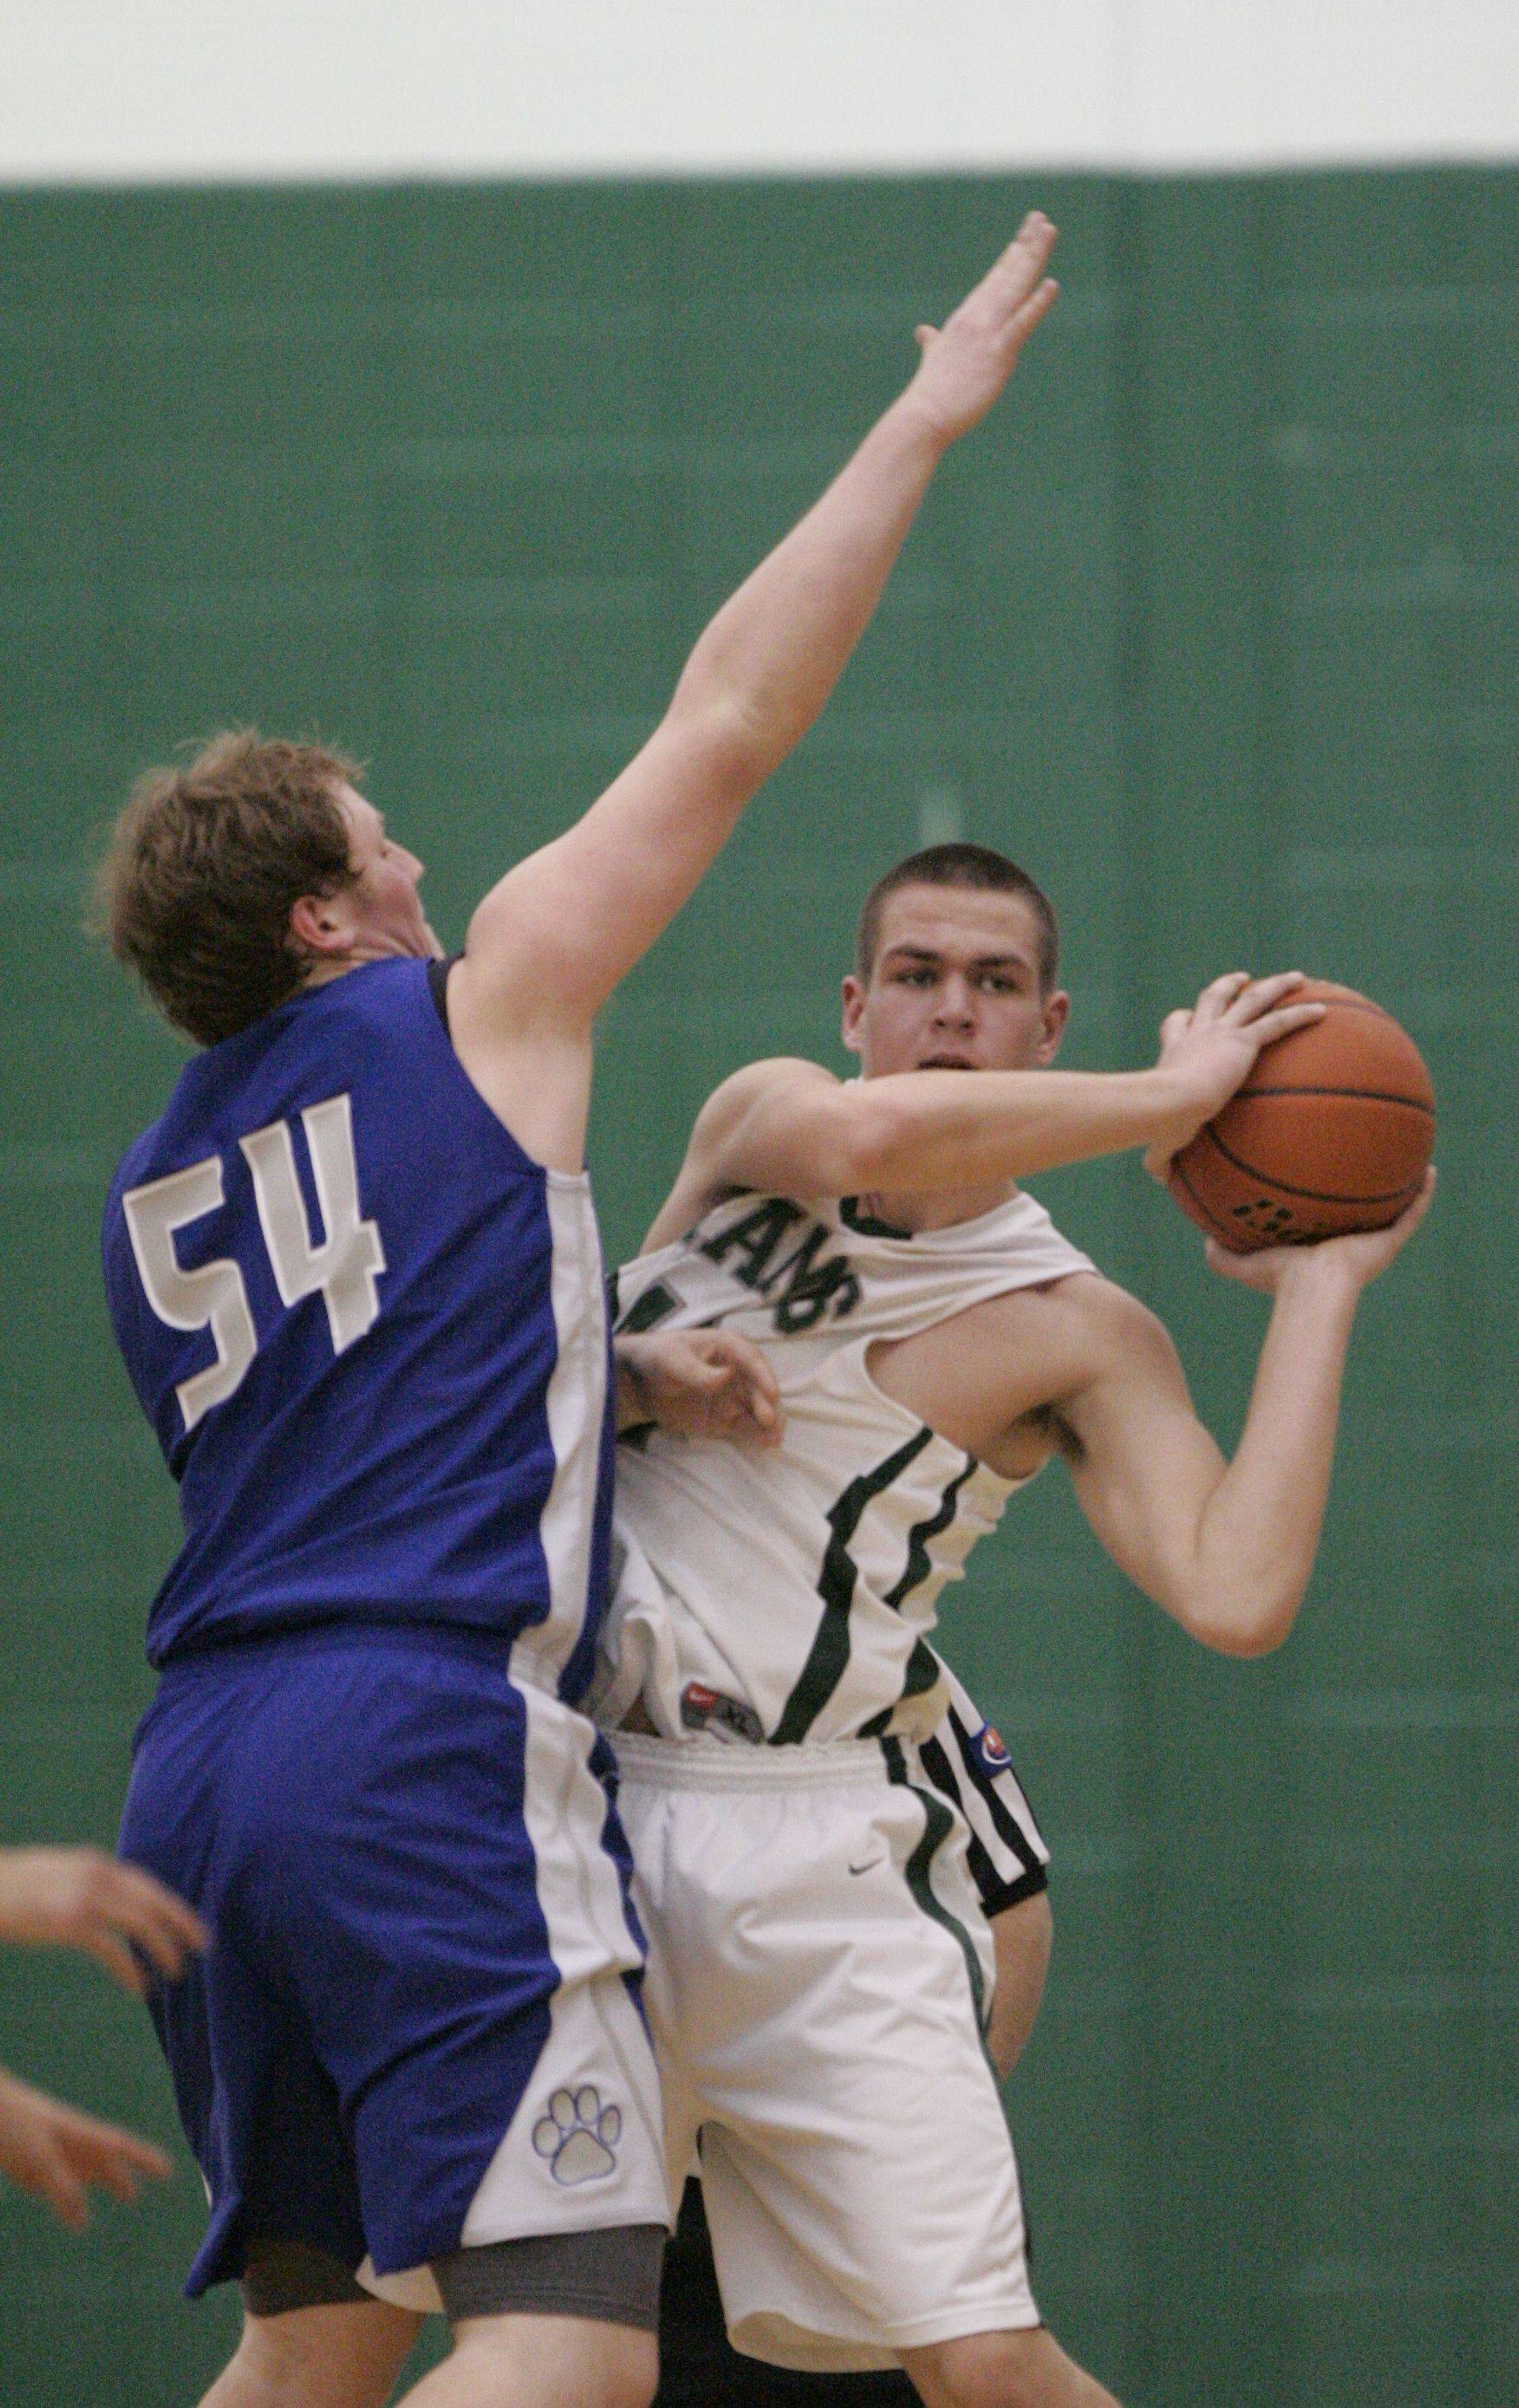 Images from the Vernon Hills at Grayslake Central boys basketball game Tuesday, February 15.